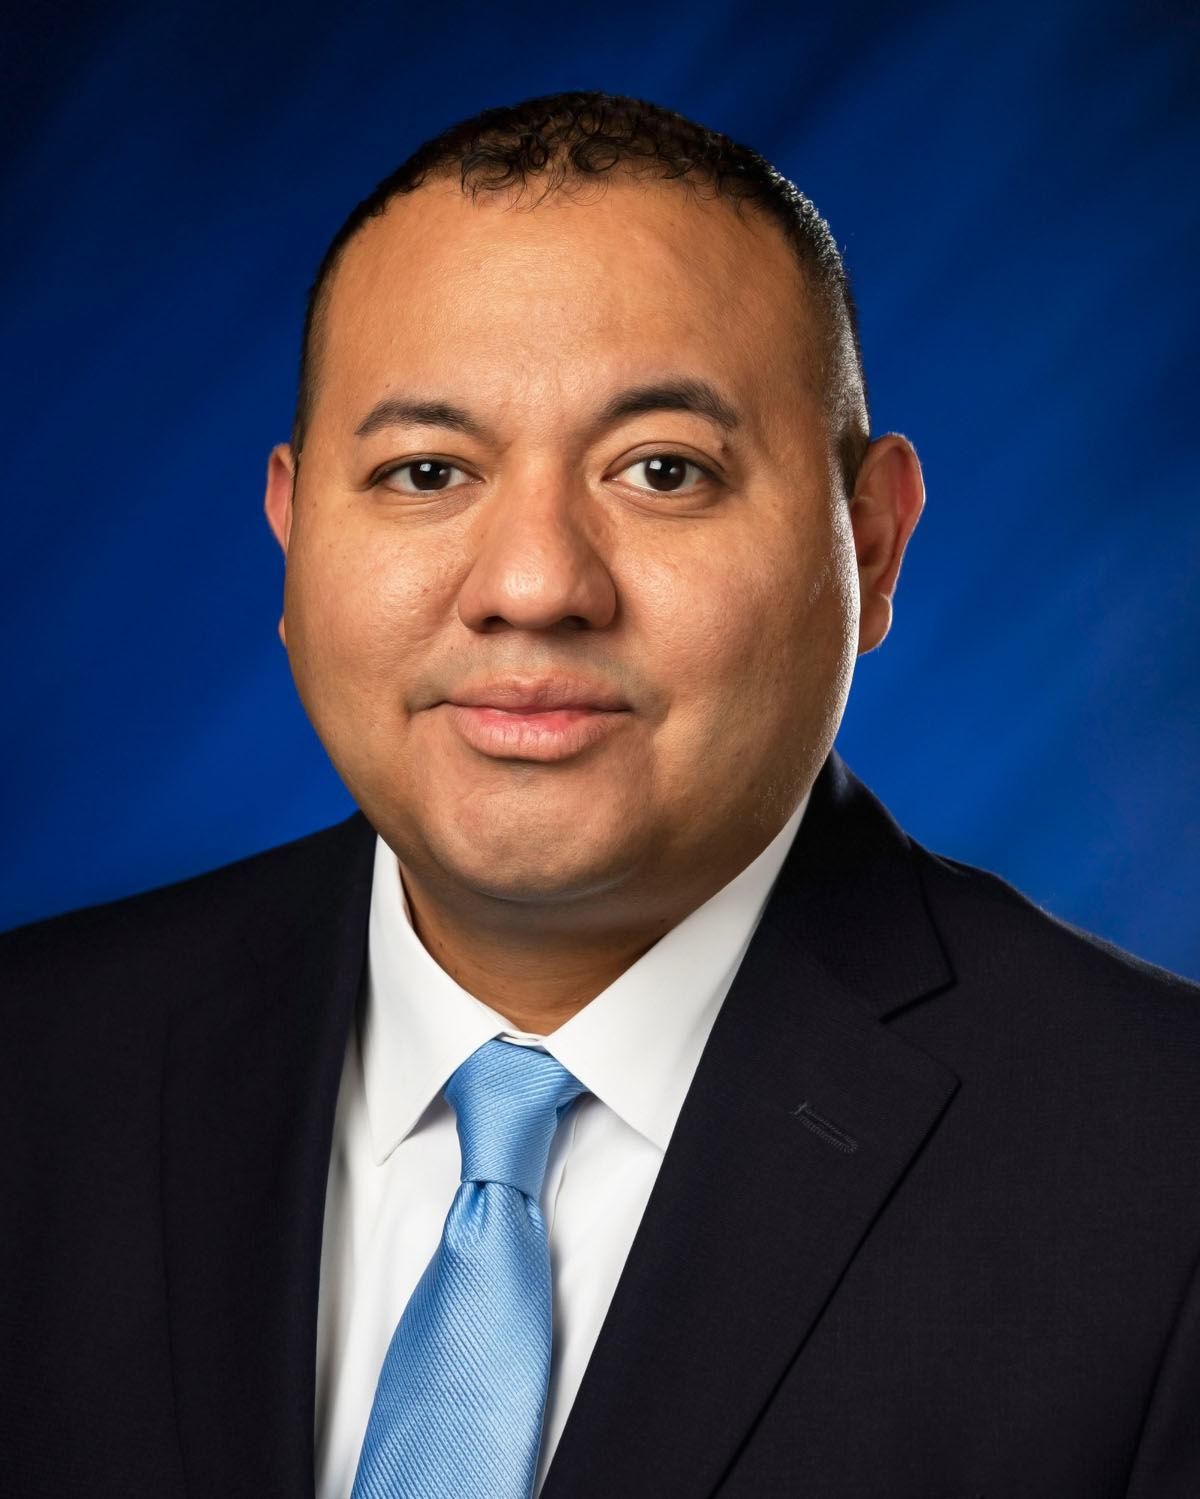 State Rep. Mike Andrade, D-Munster